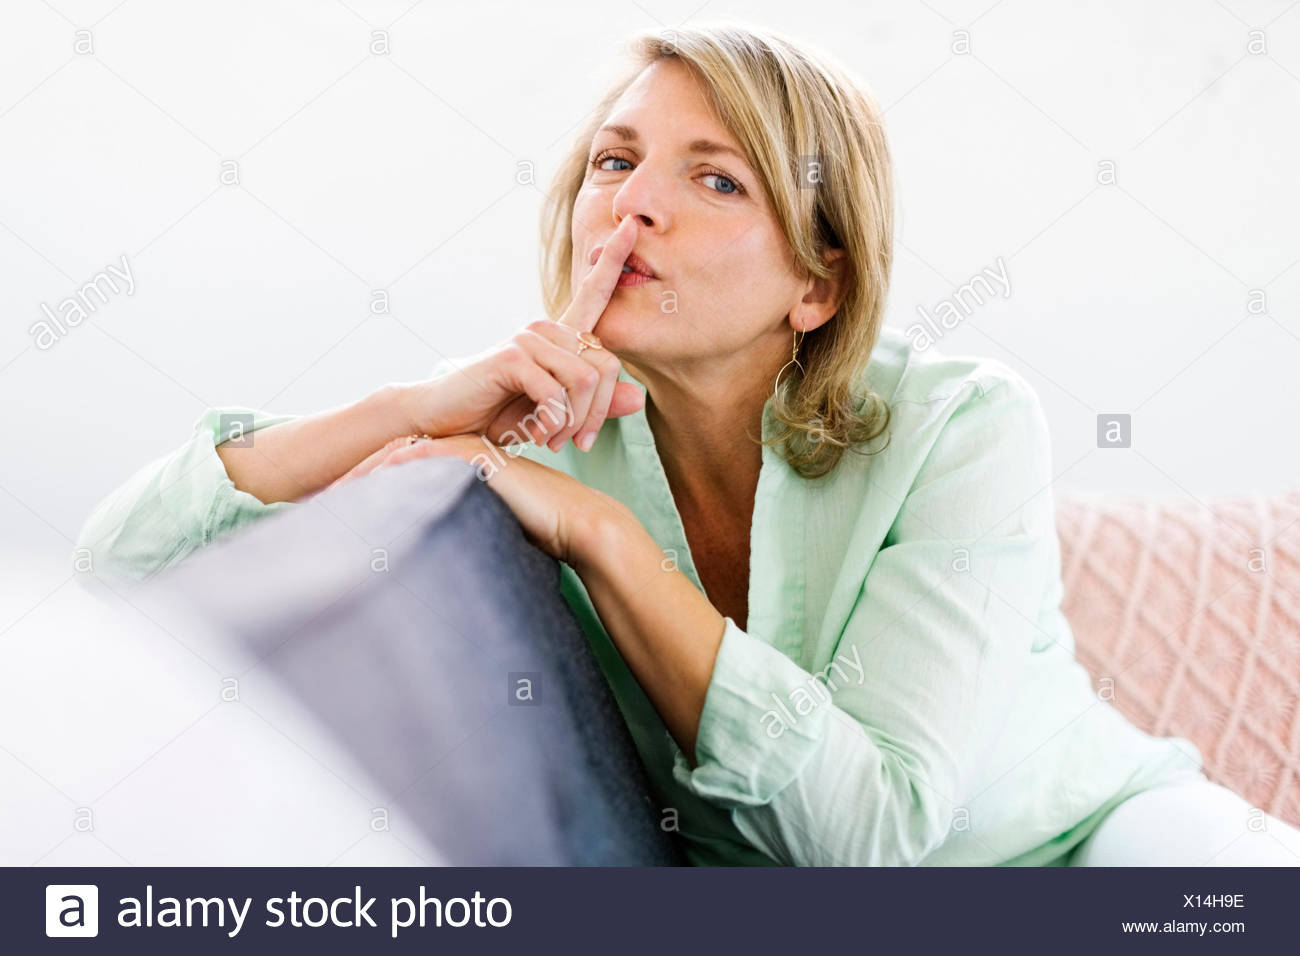 Portrait of woman sitting on sofa with finger on lips - Stock Image